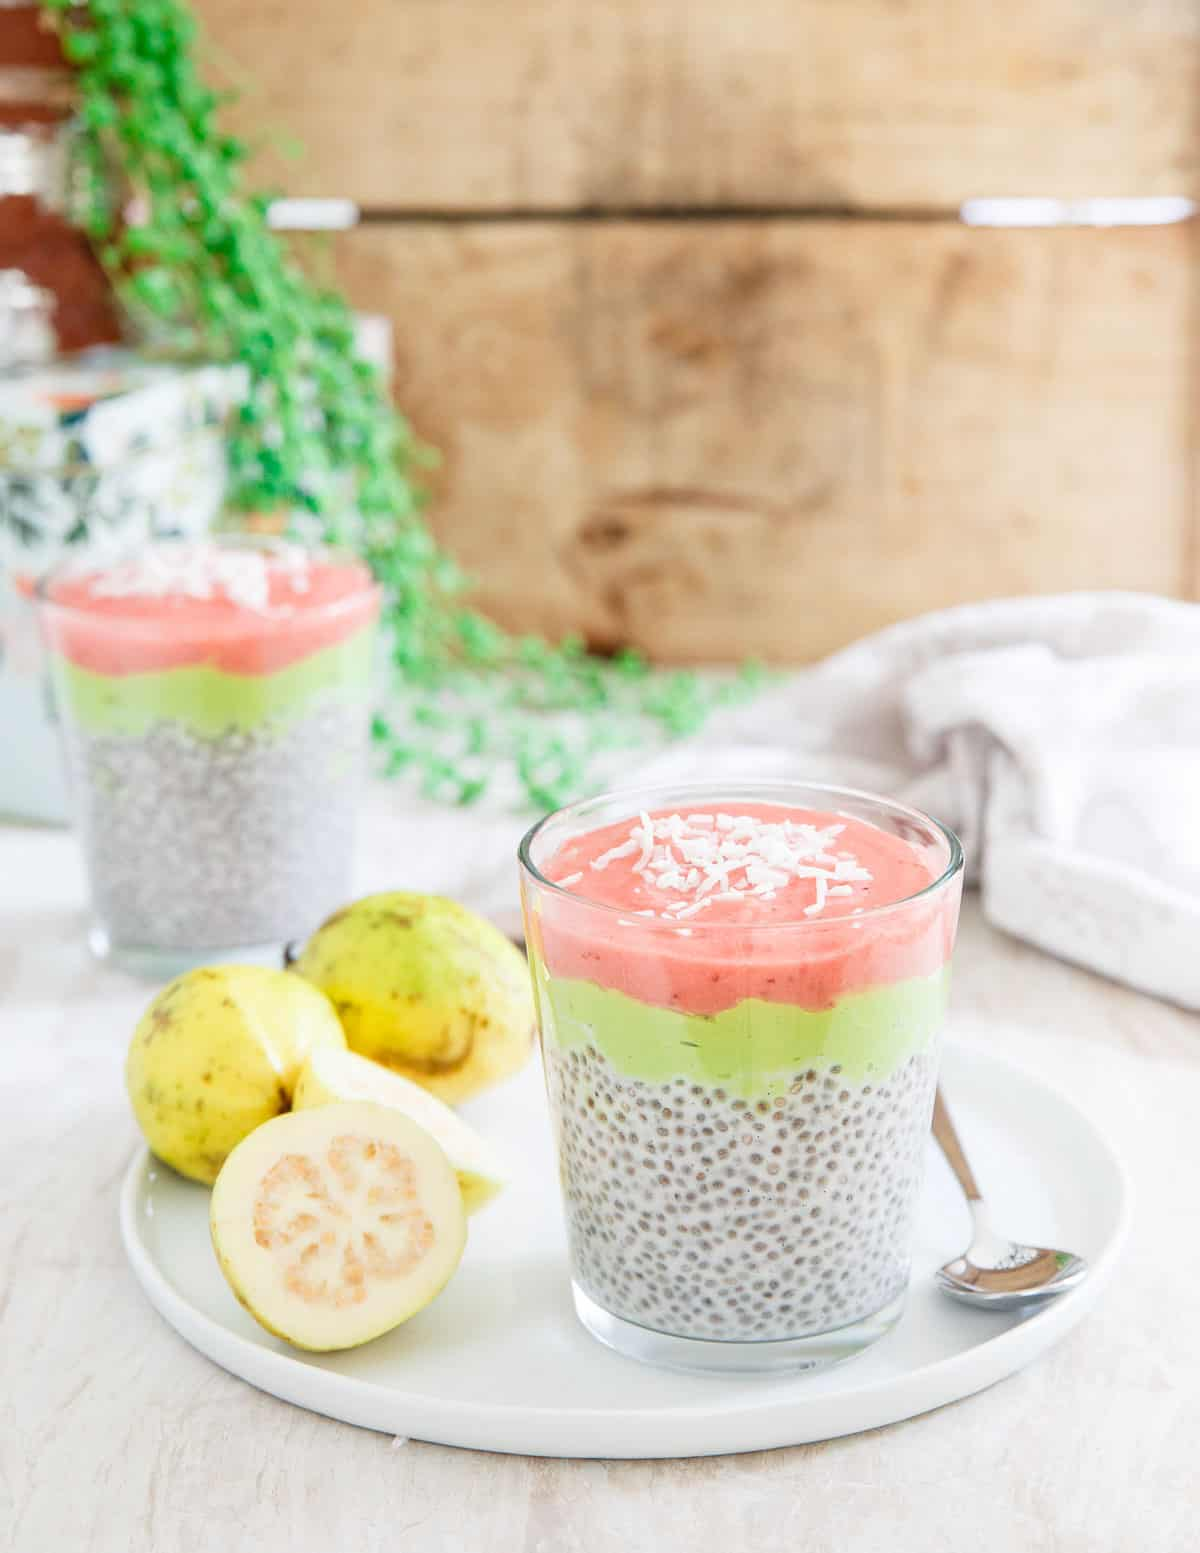 This guava chia pudding has a vanilla chia base, a creamy avocado banana middle layer and a sweet and tangy strawberry guava jam topping.